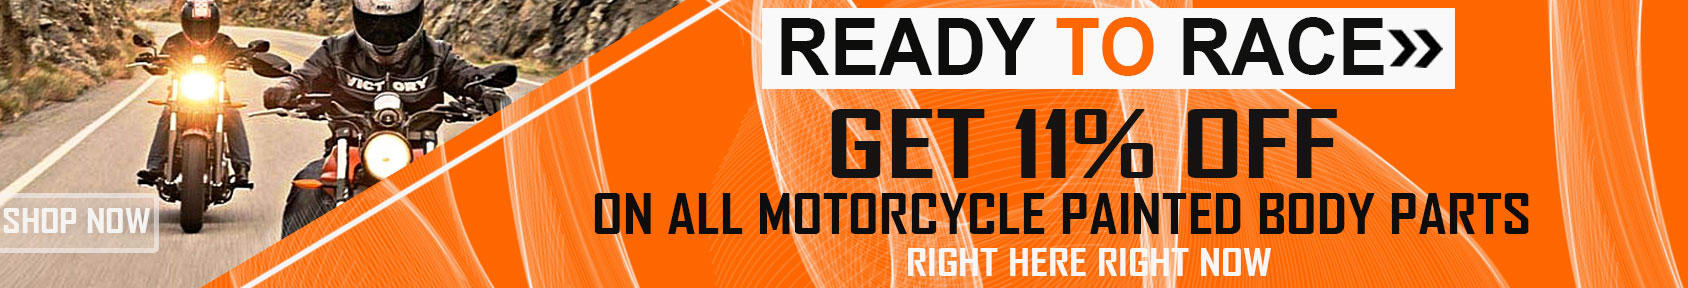 Special offers on Genuine Motorcycle Spare Parts And Accessories - 11% OFF ALL PAINTED BODY PARTS